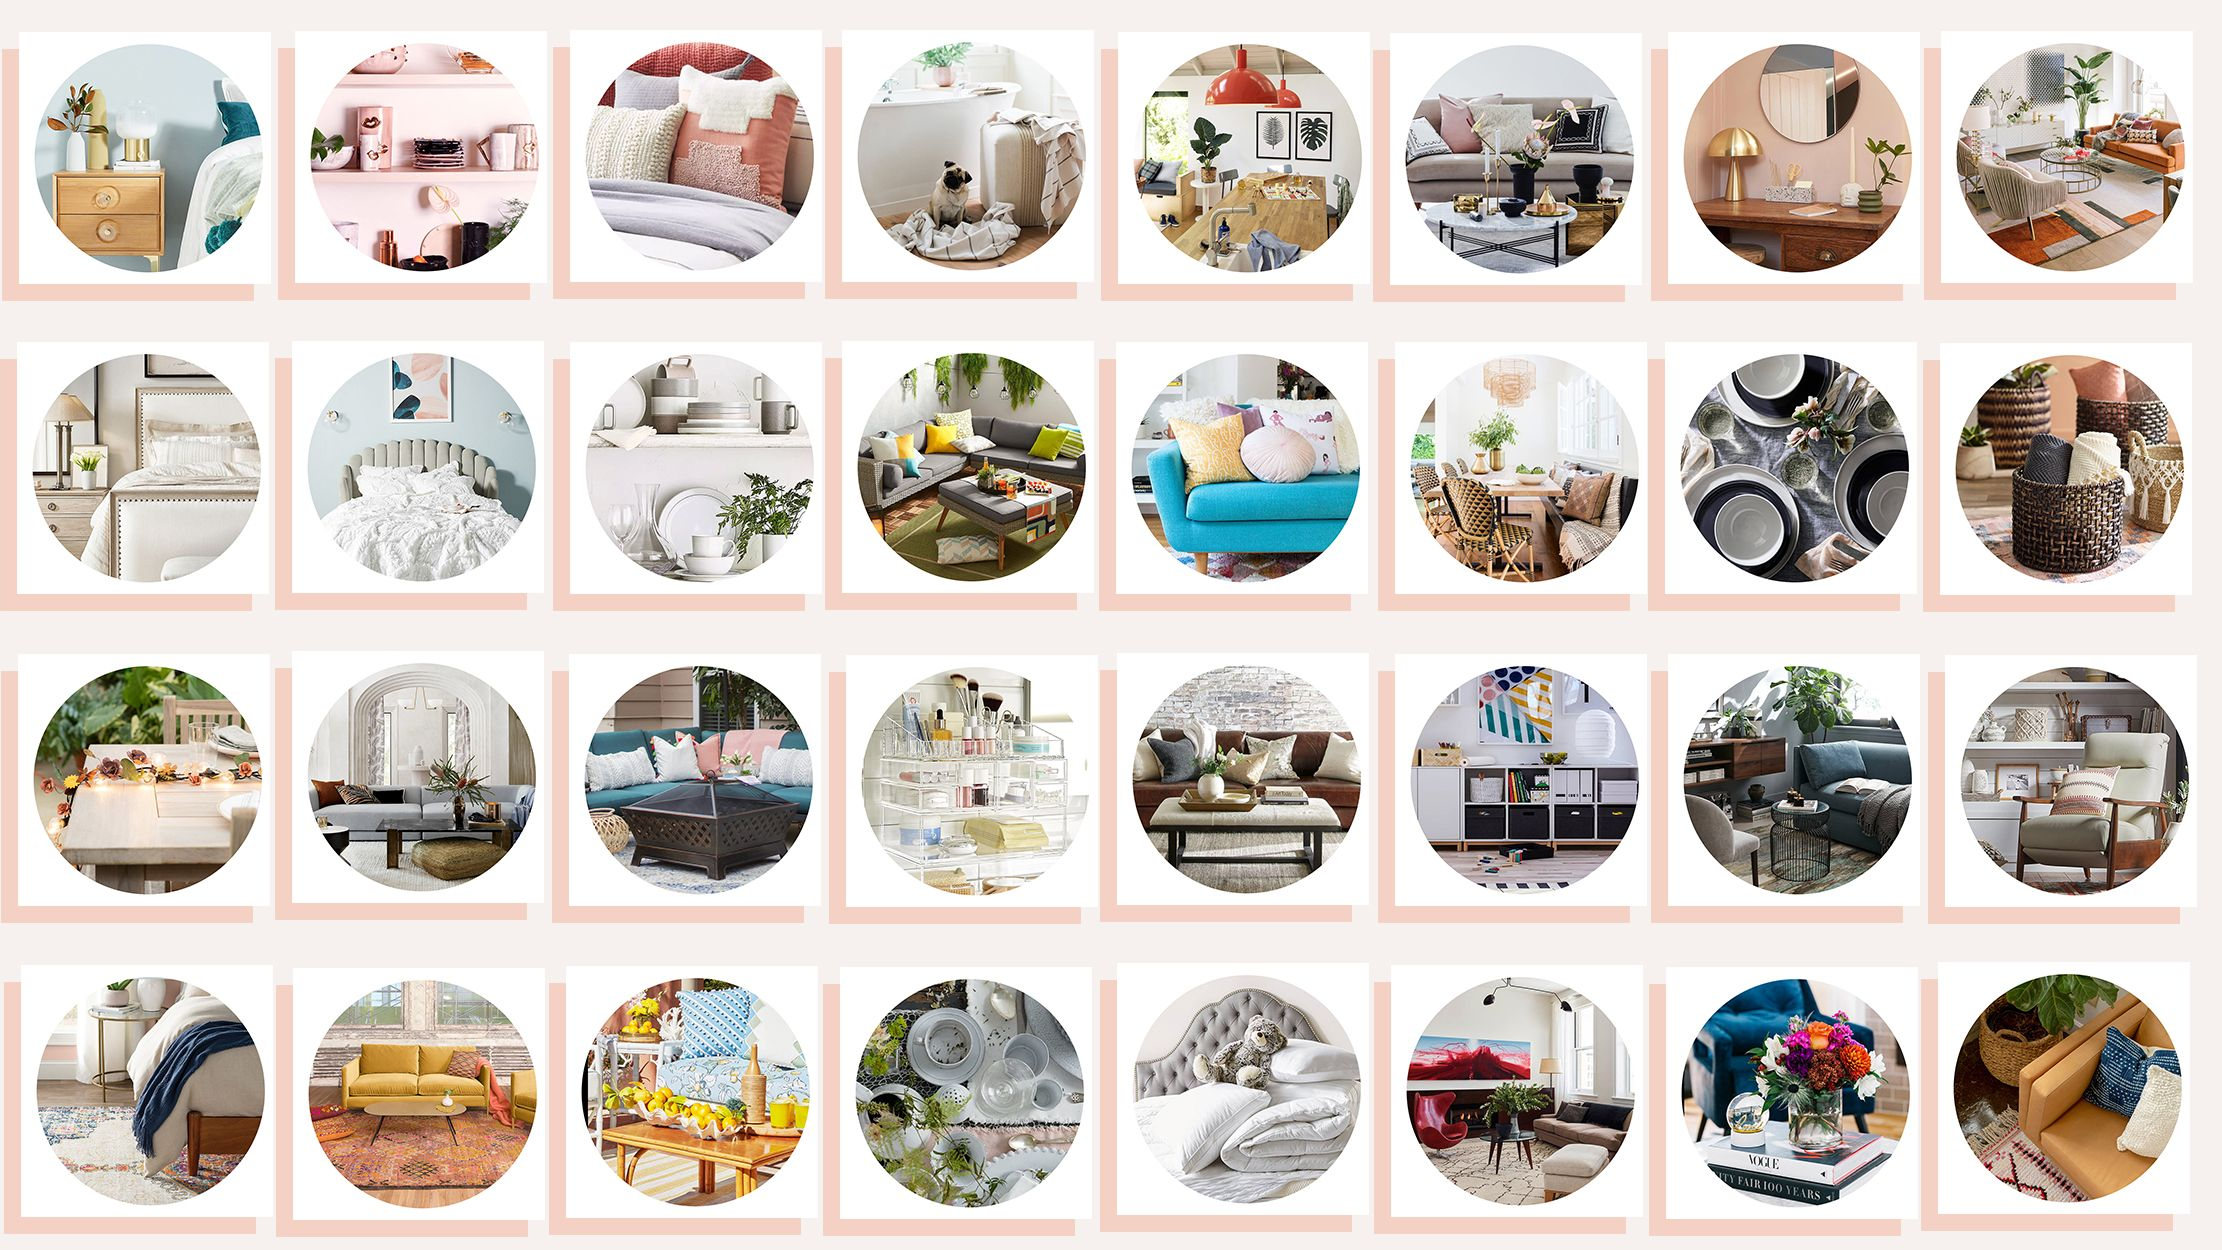 30 Best Home Decor Stores To Shop Online In 2019   Our Favorite Home Decor  Websites